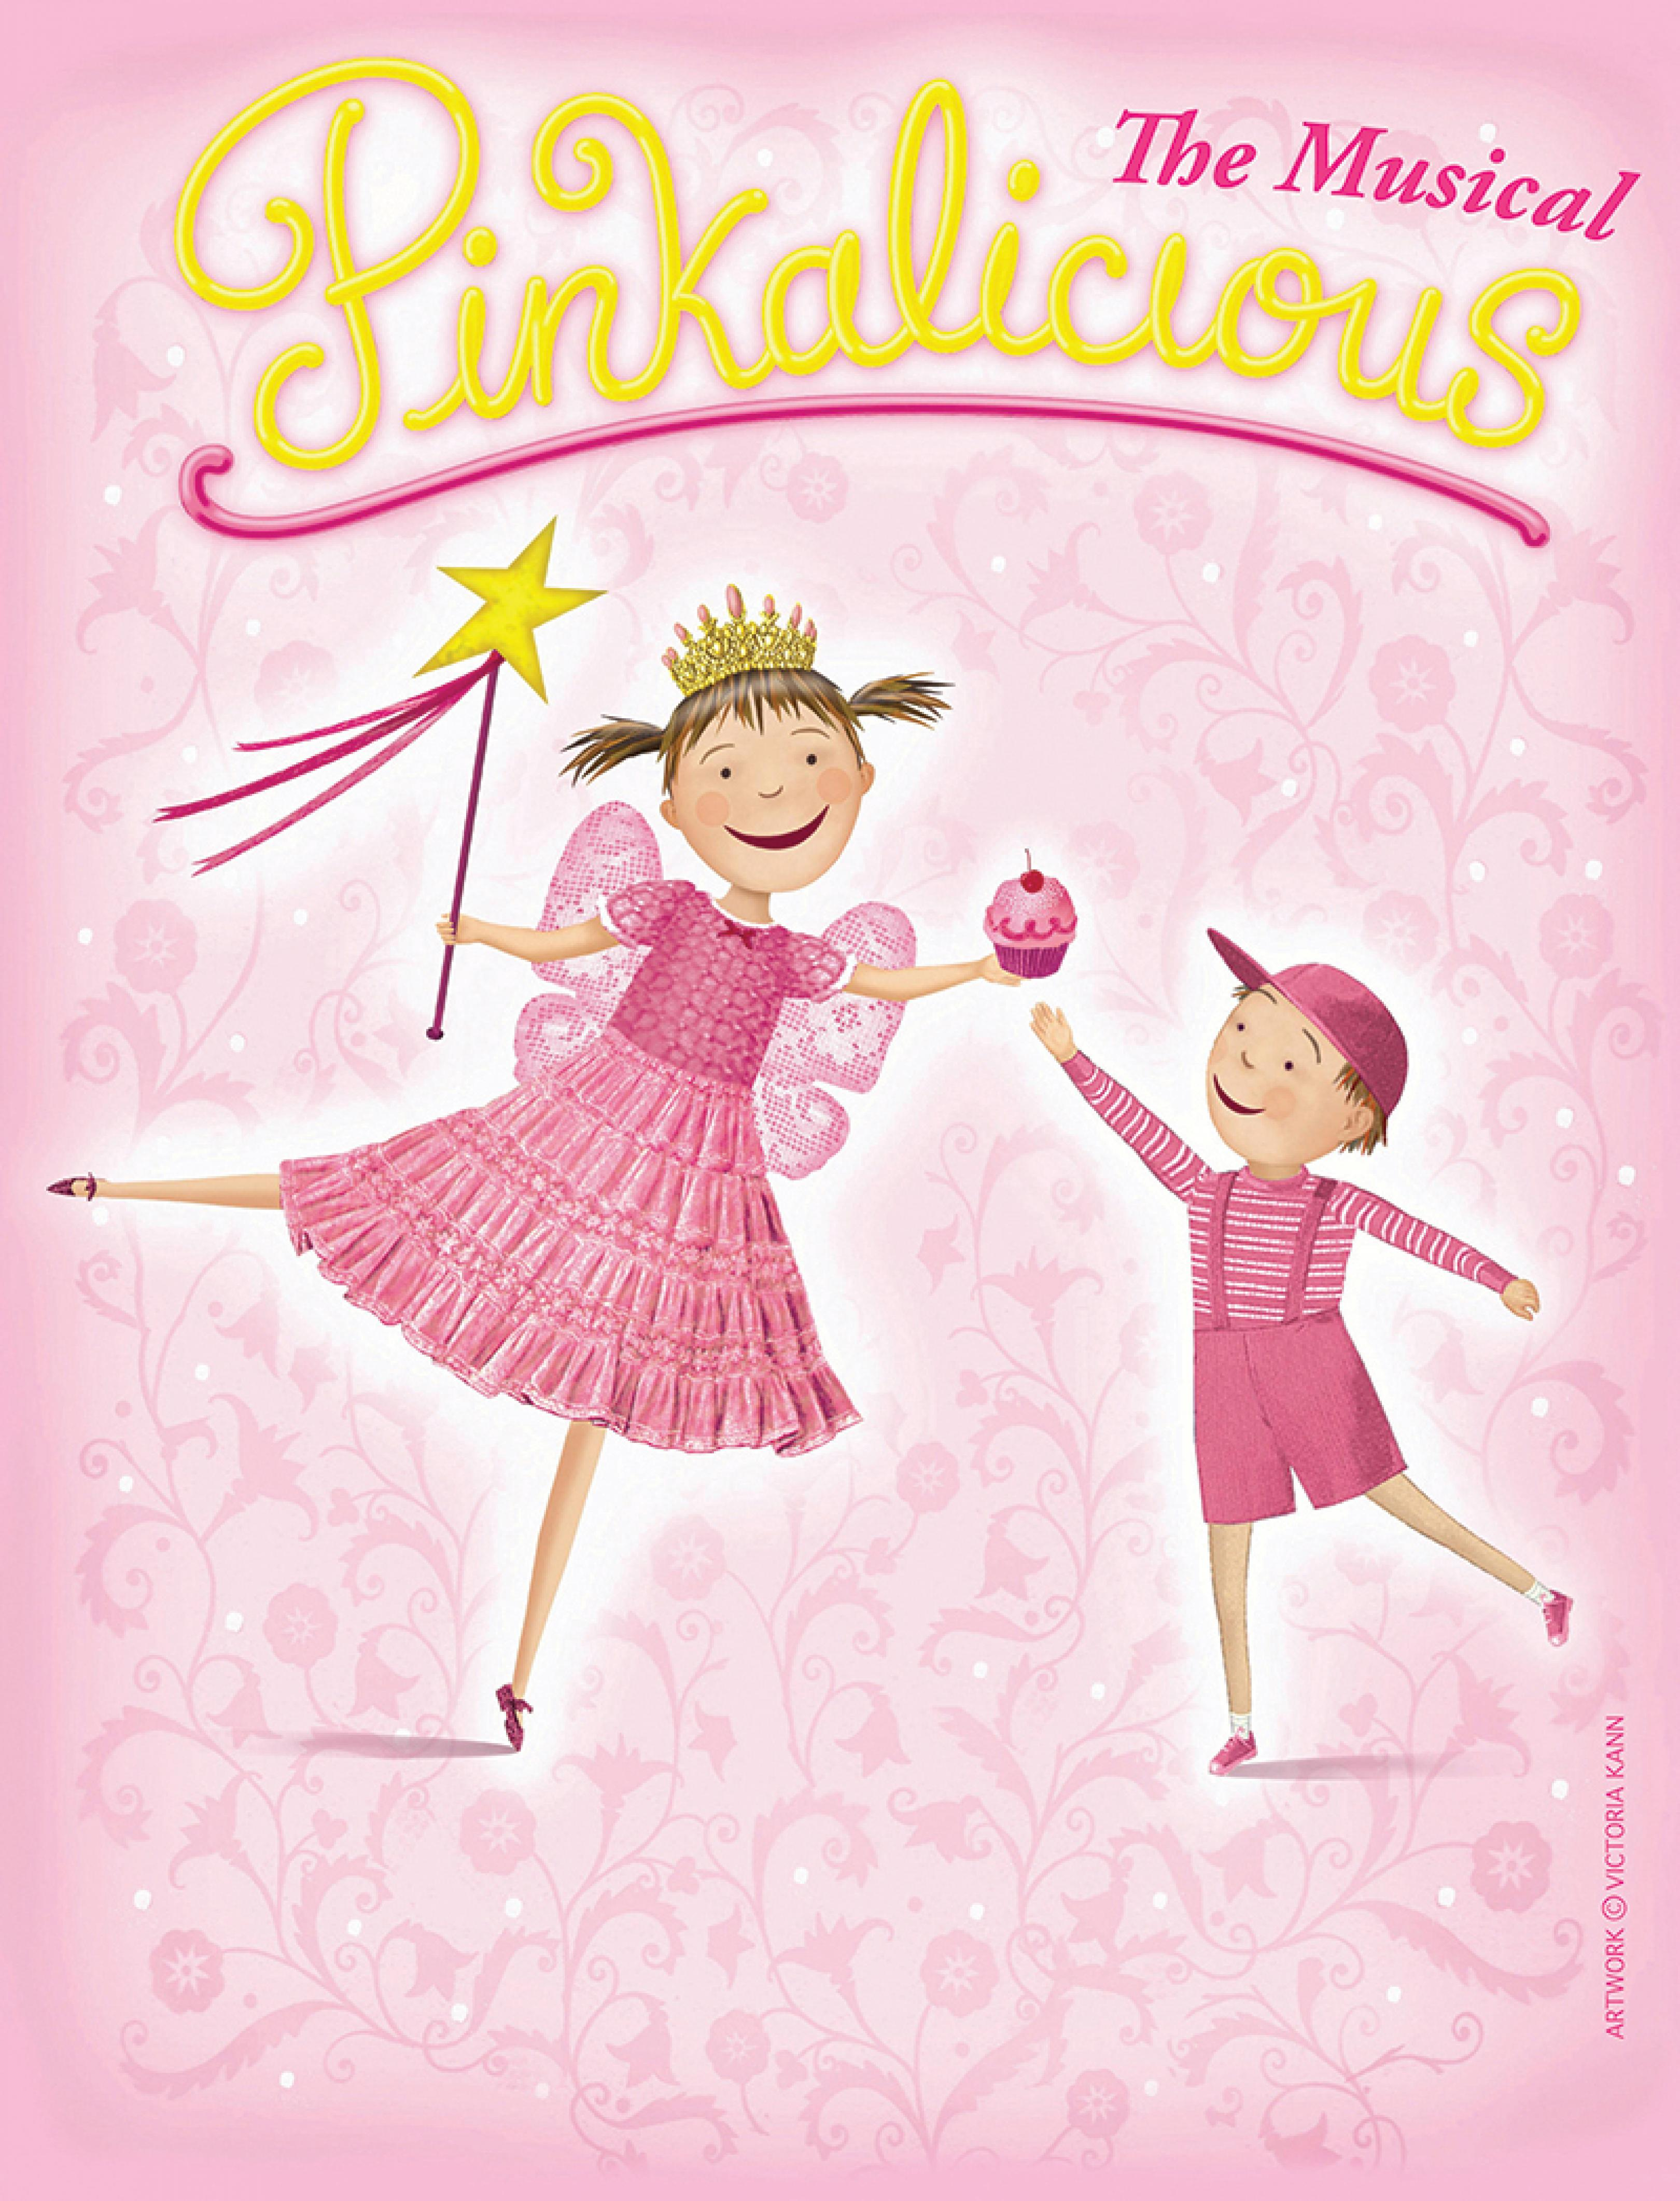 publicity image for Pinkalicious the Musical